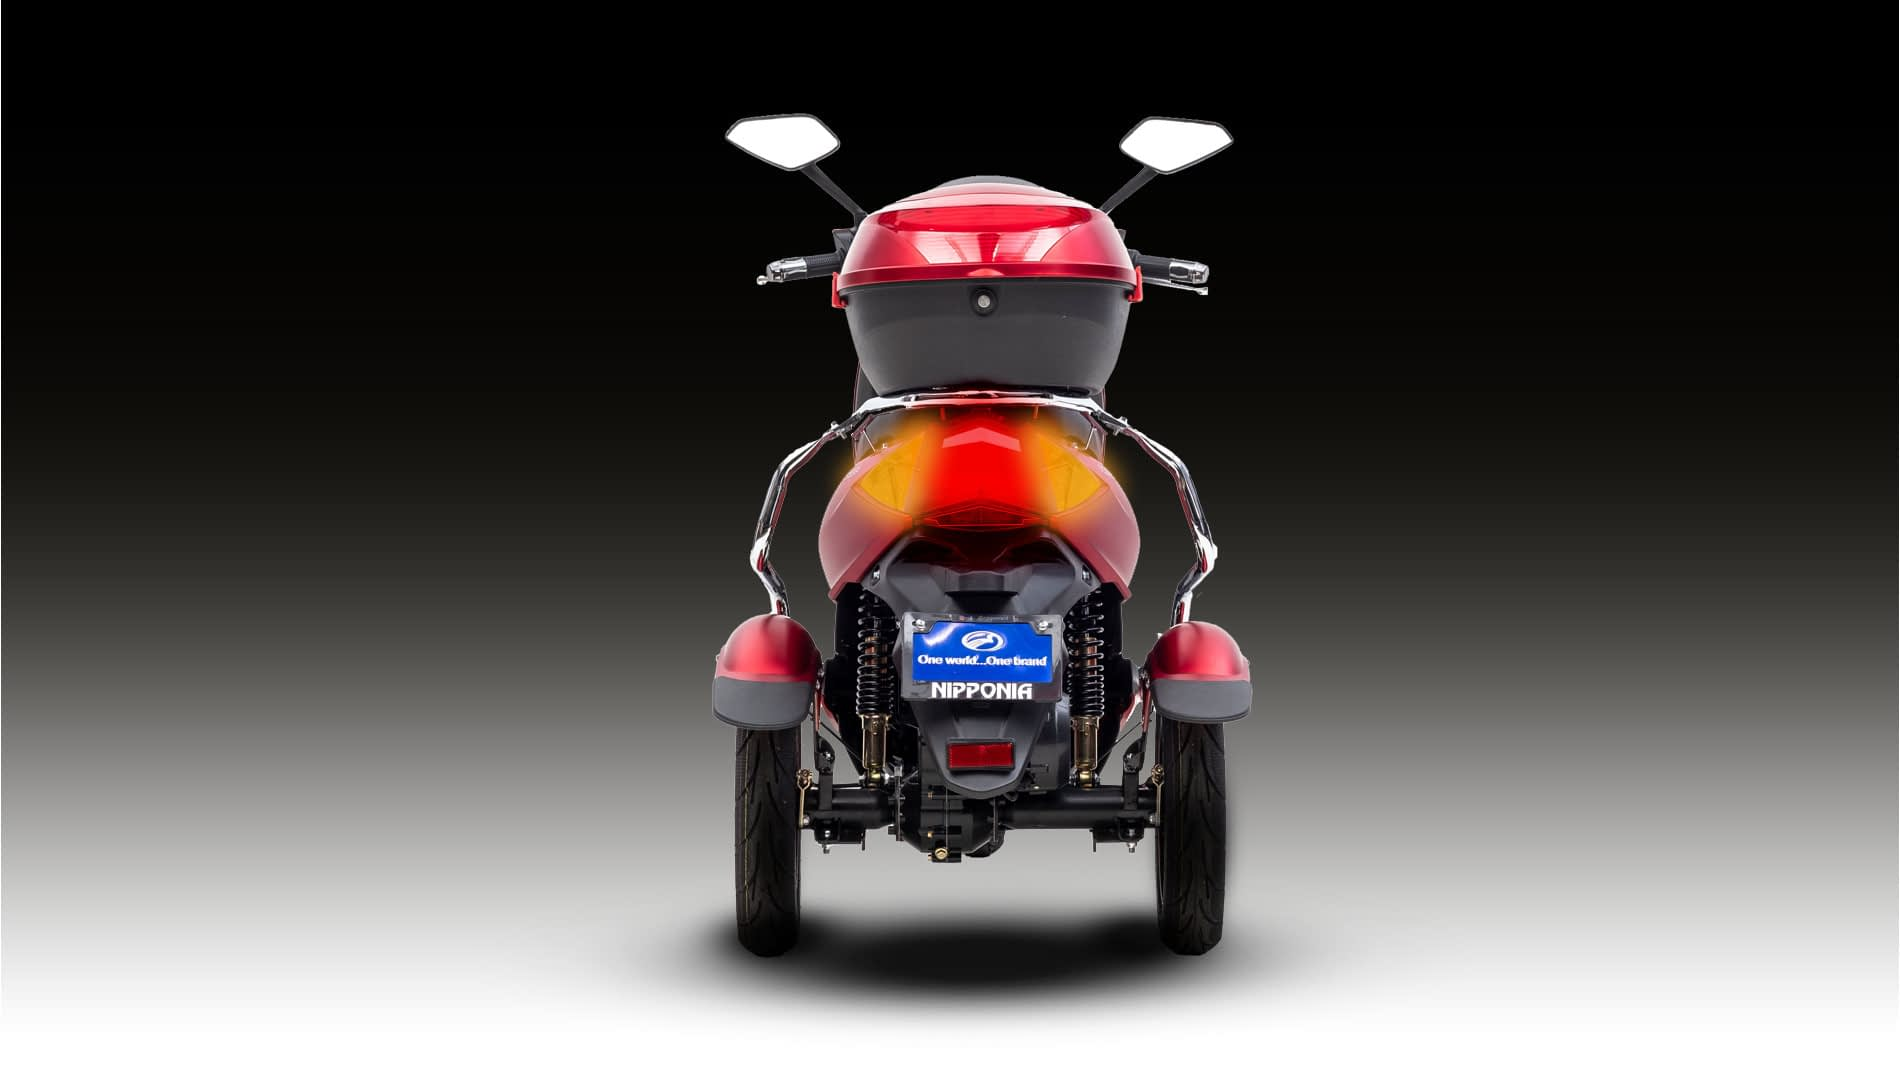 Driewielscooter Pride Back Light